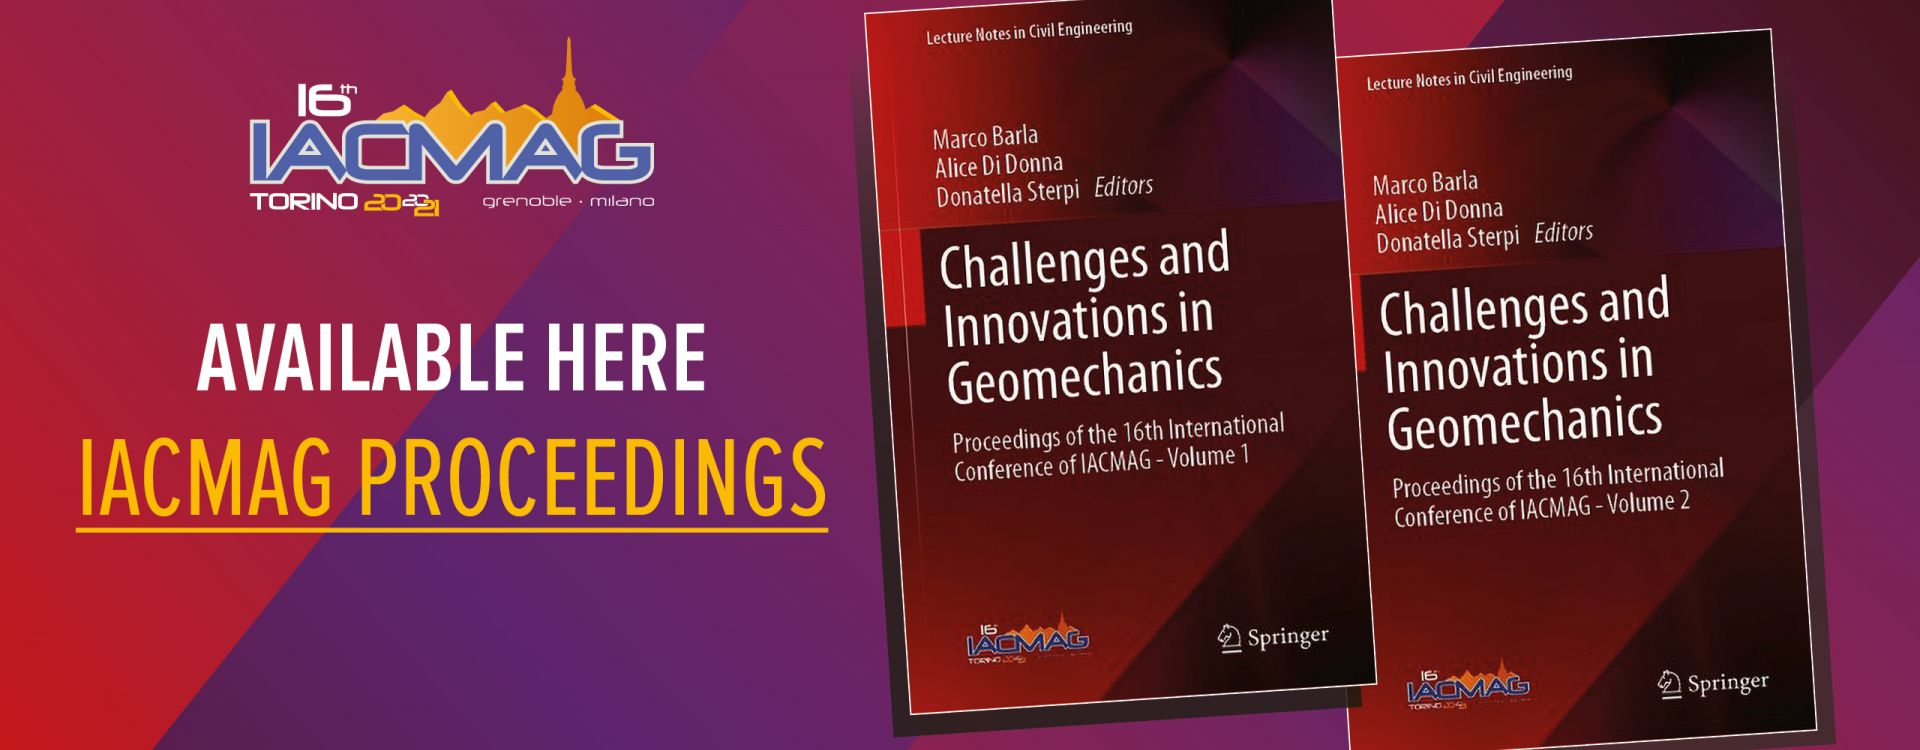 16th International Conference of IACMAG  1